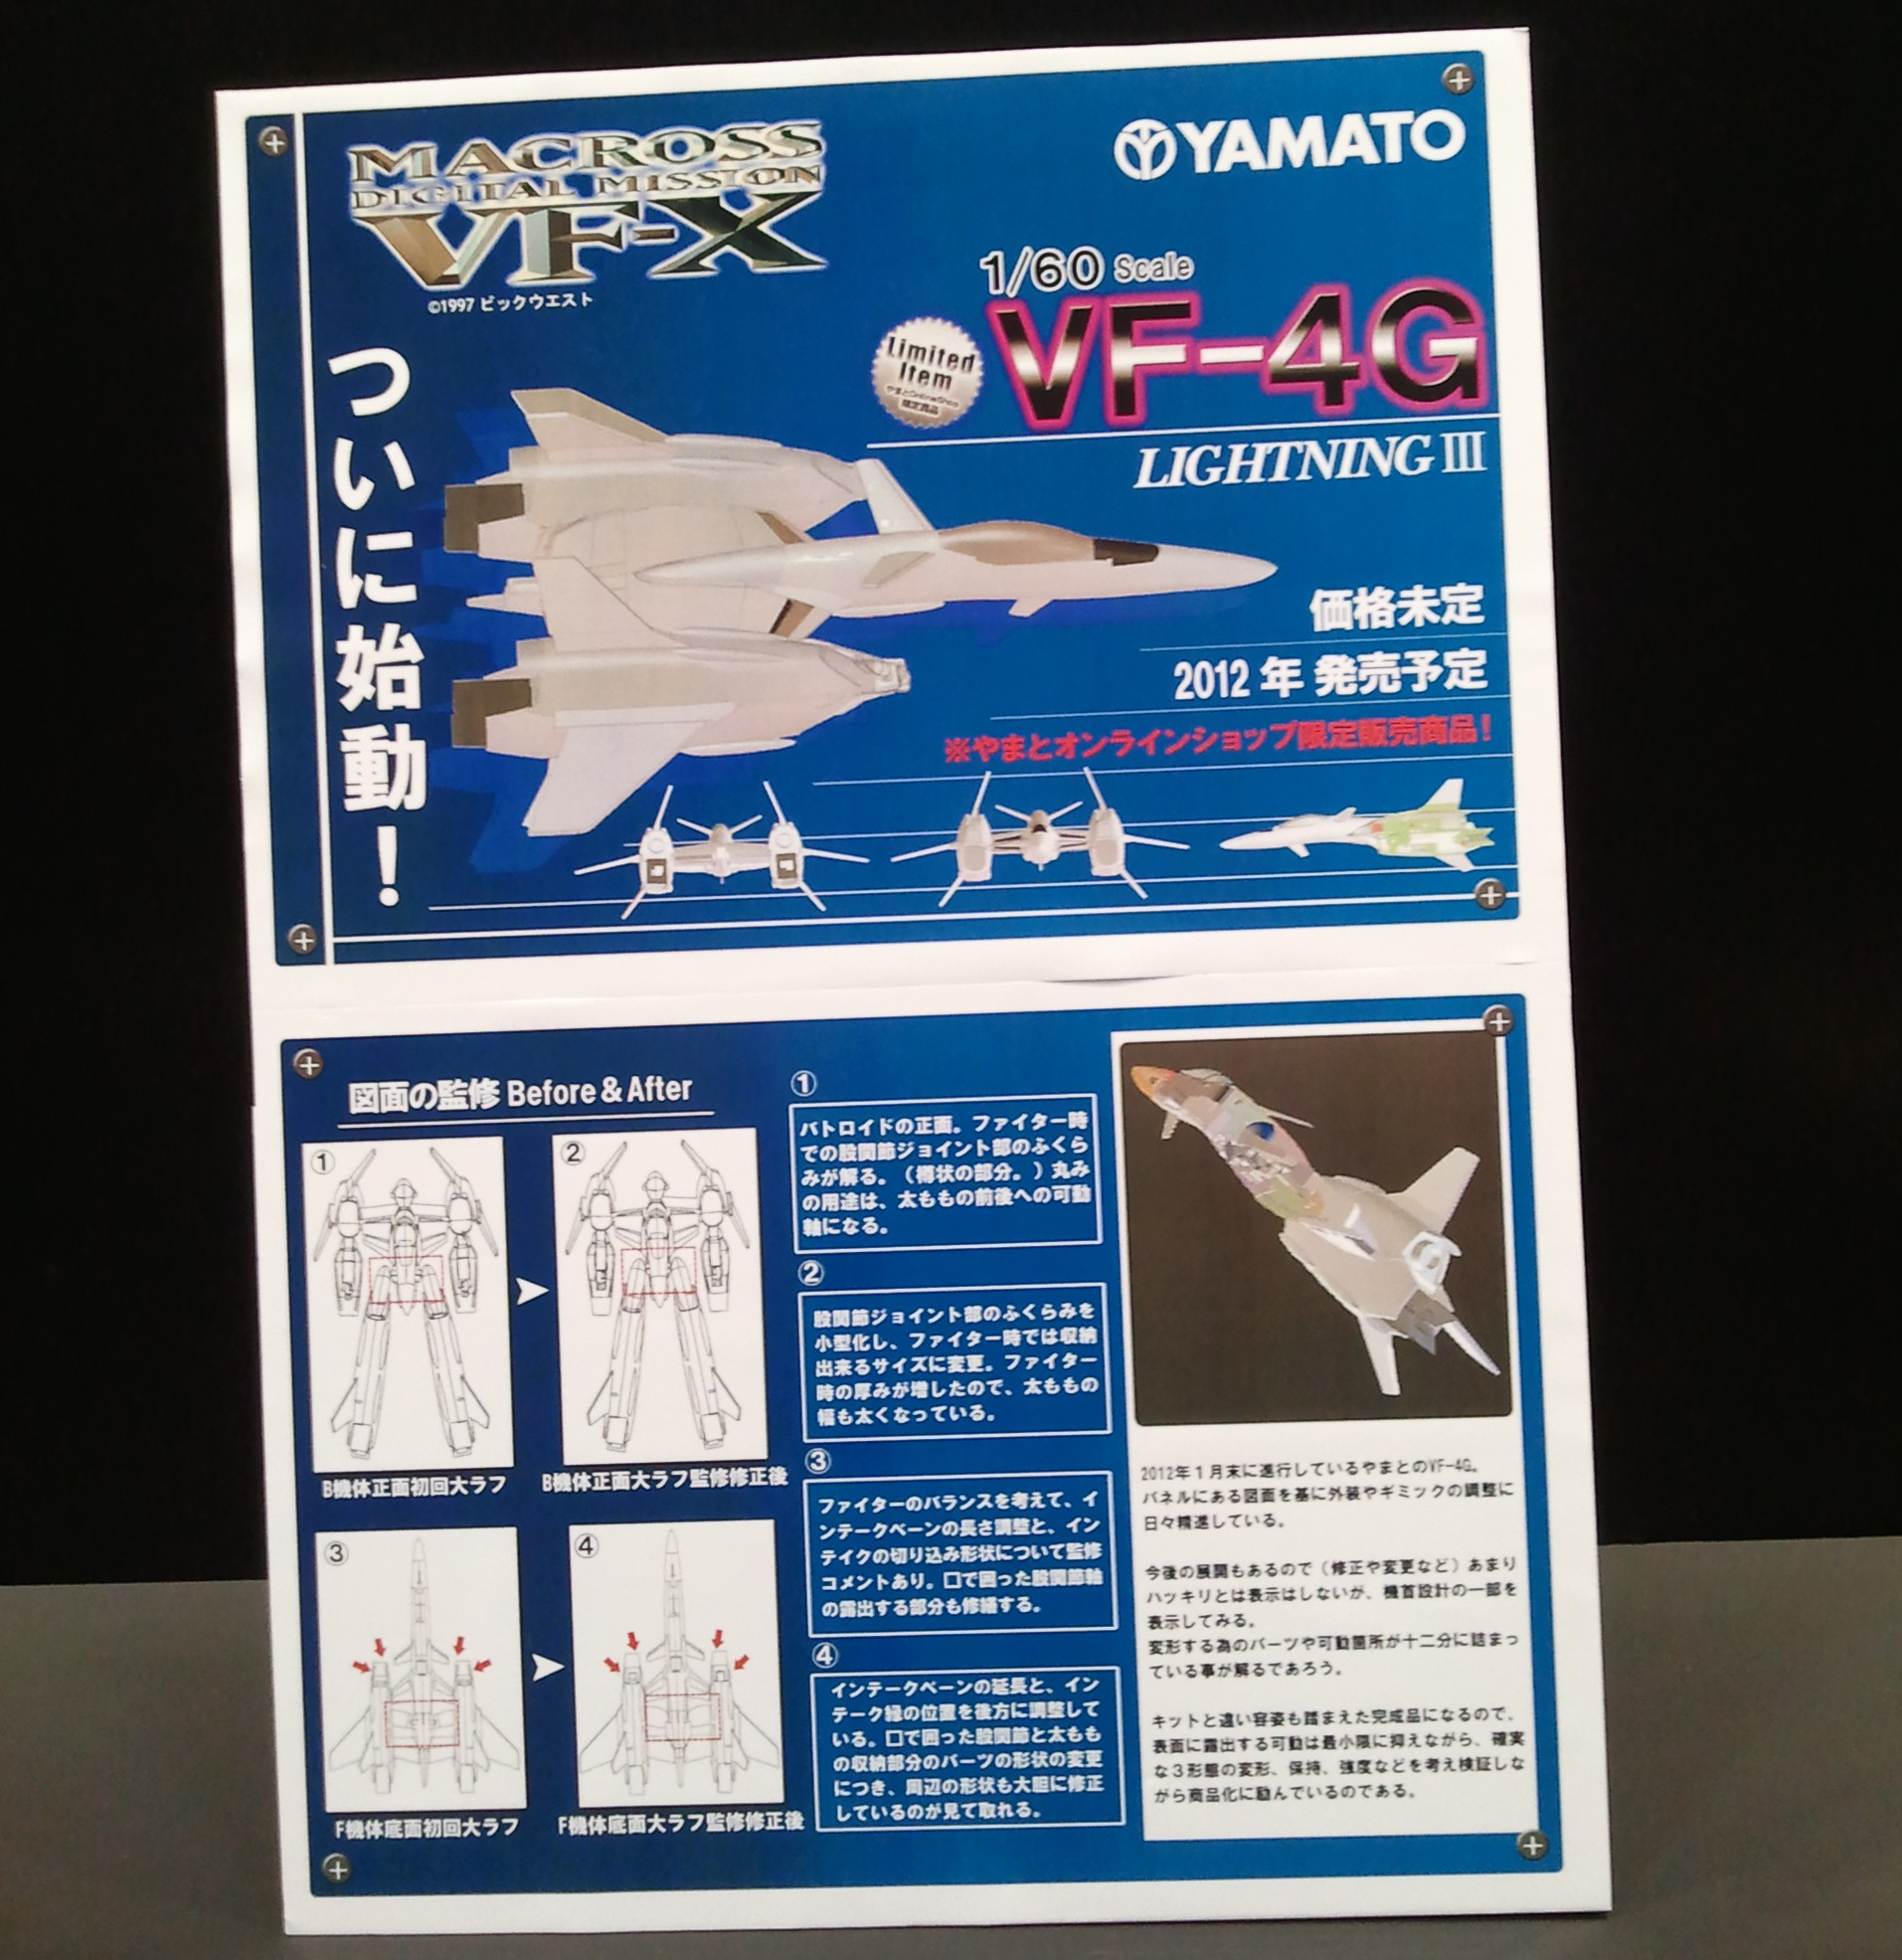 VF-4G schematics display at 2012 Winter WonderFest